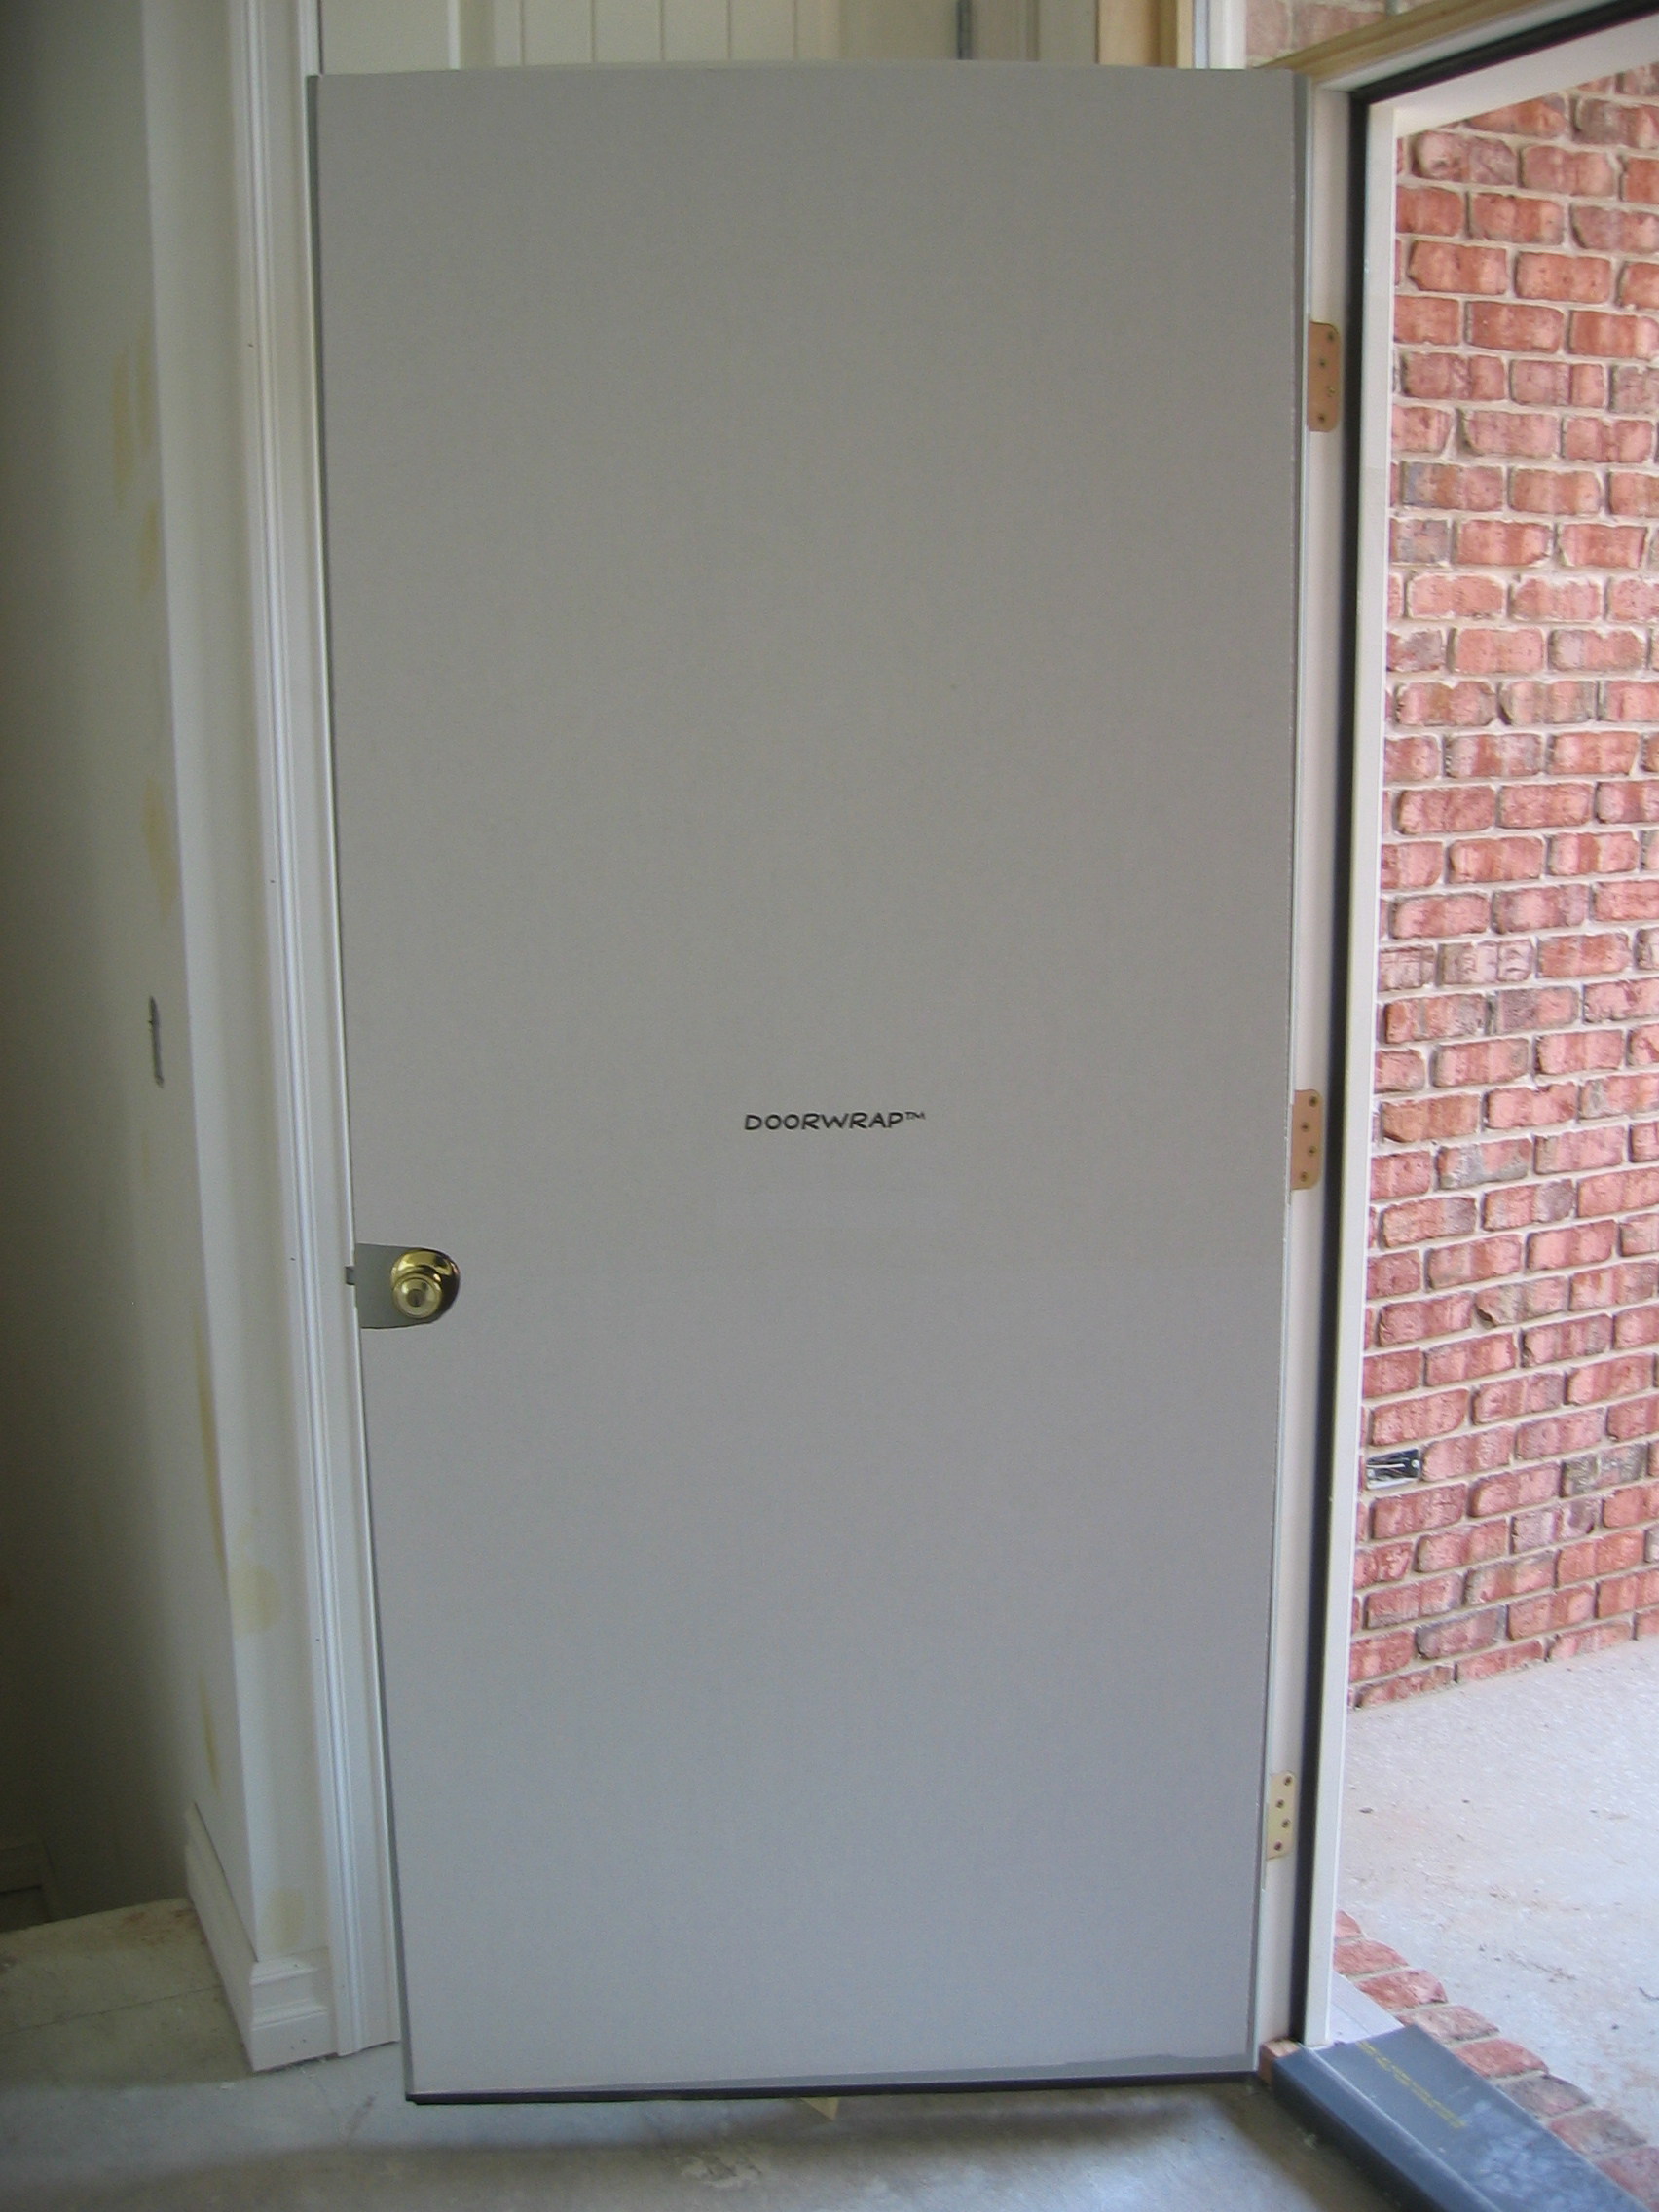 Surface Protection International Reveals Its New DoorWrap Door Protection for Builders